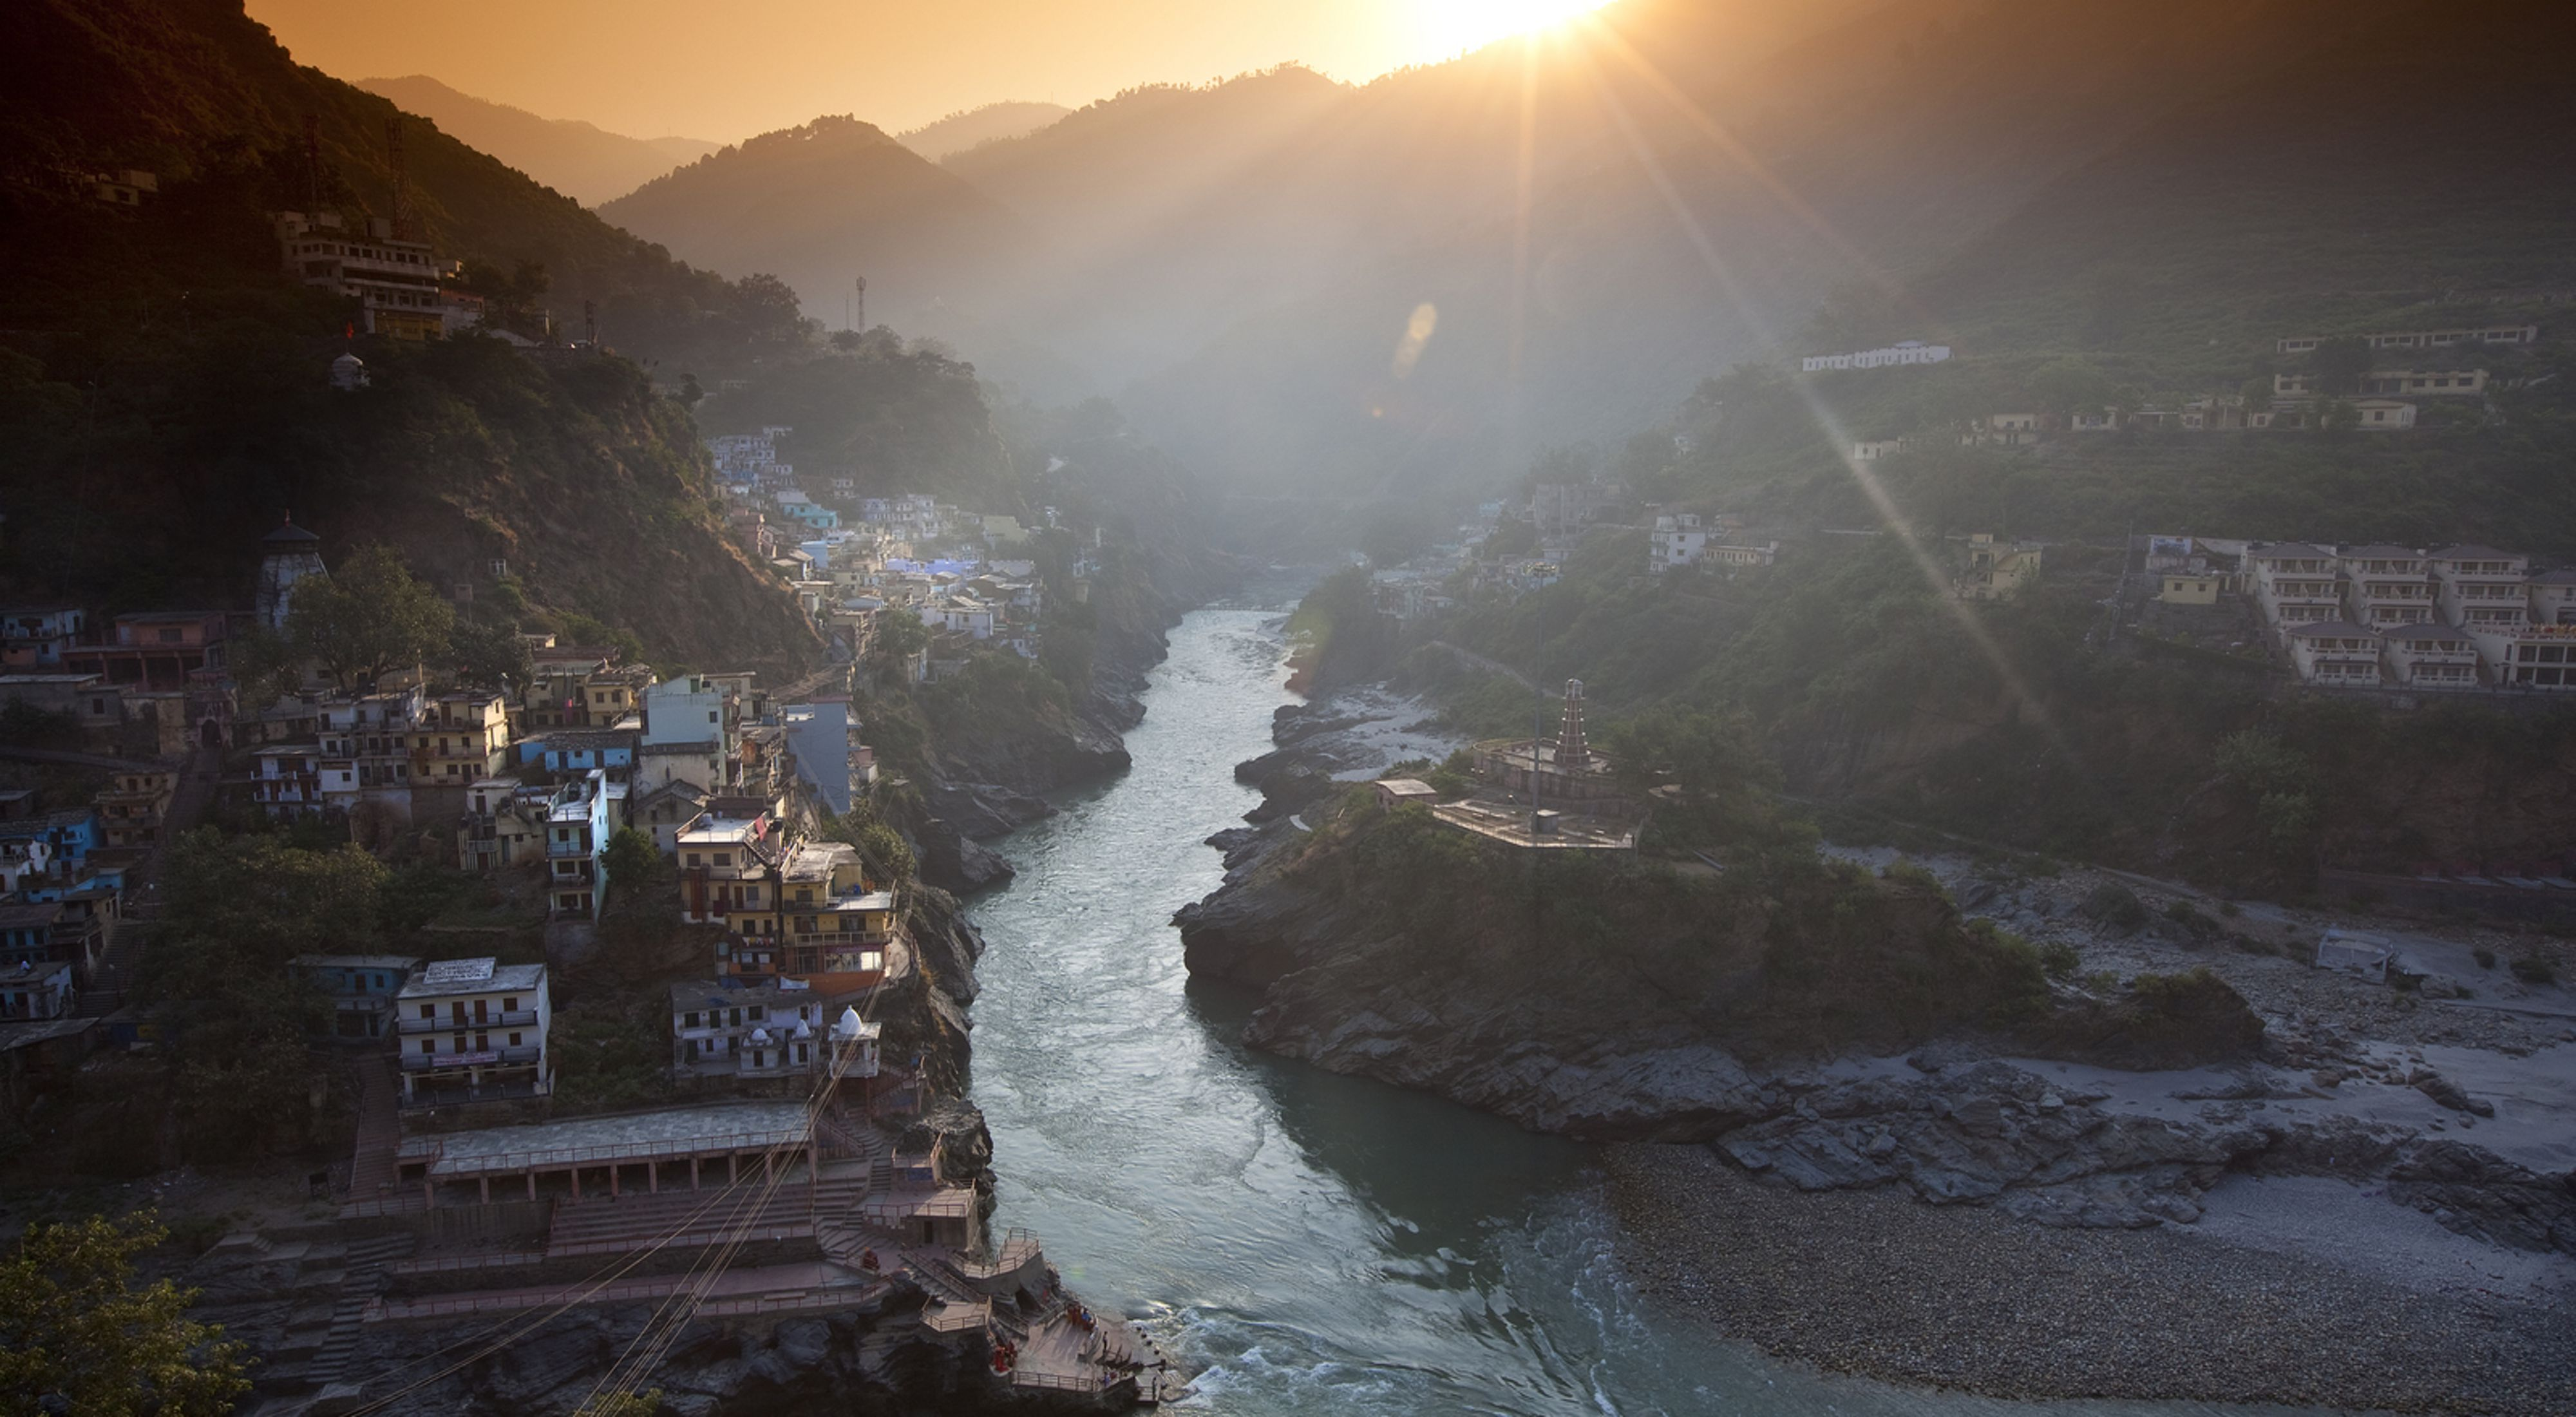 in Devprayag, India, where two other rivers, the Bhagirathi and Alaknanda, converge